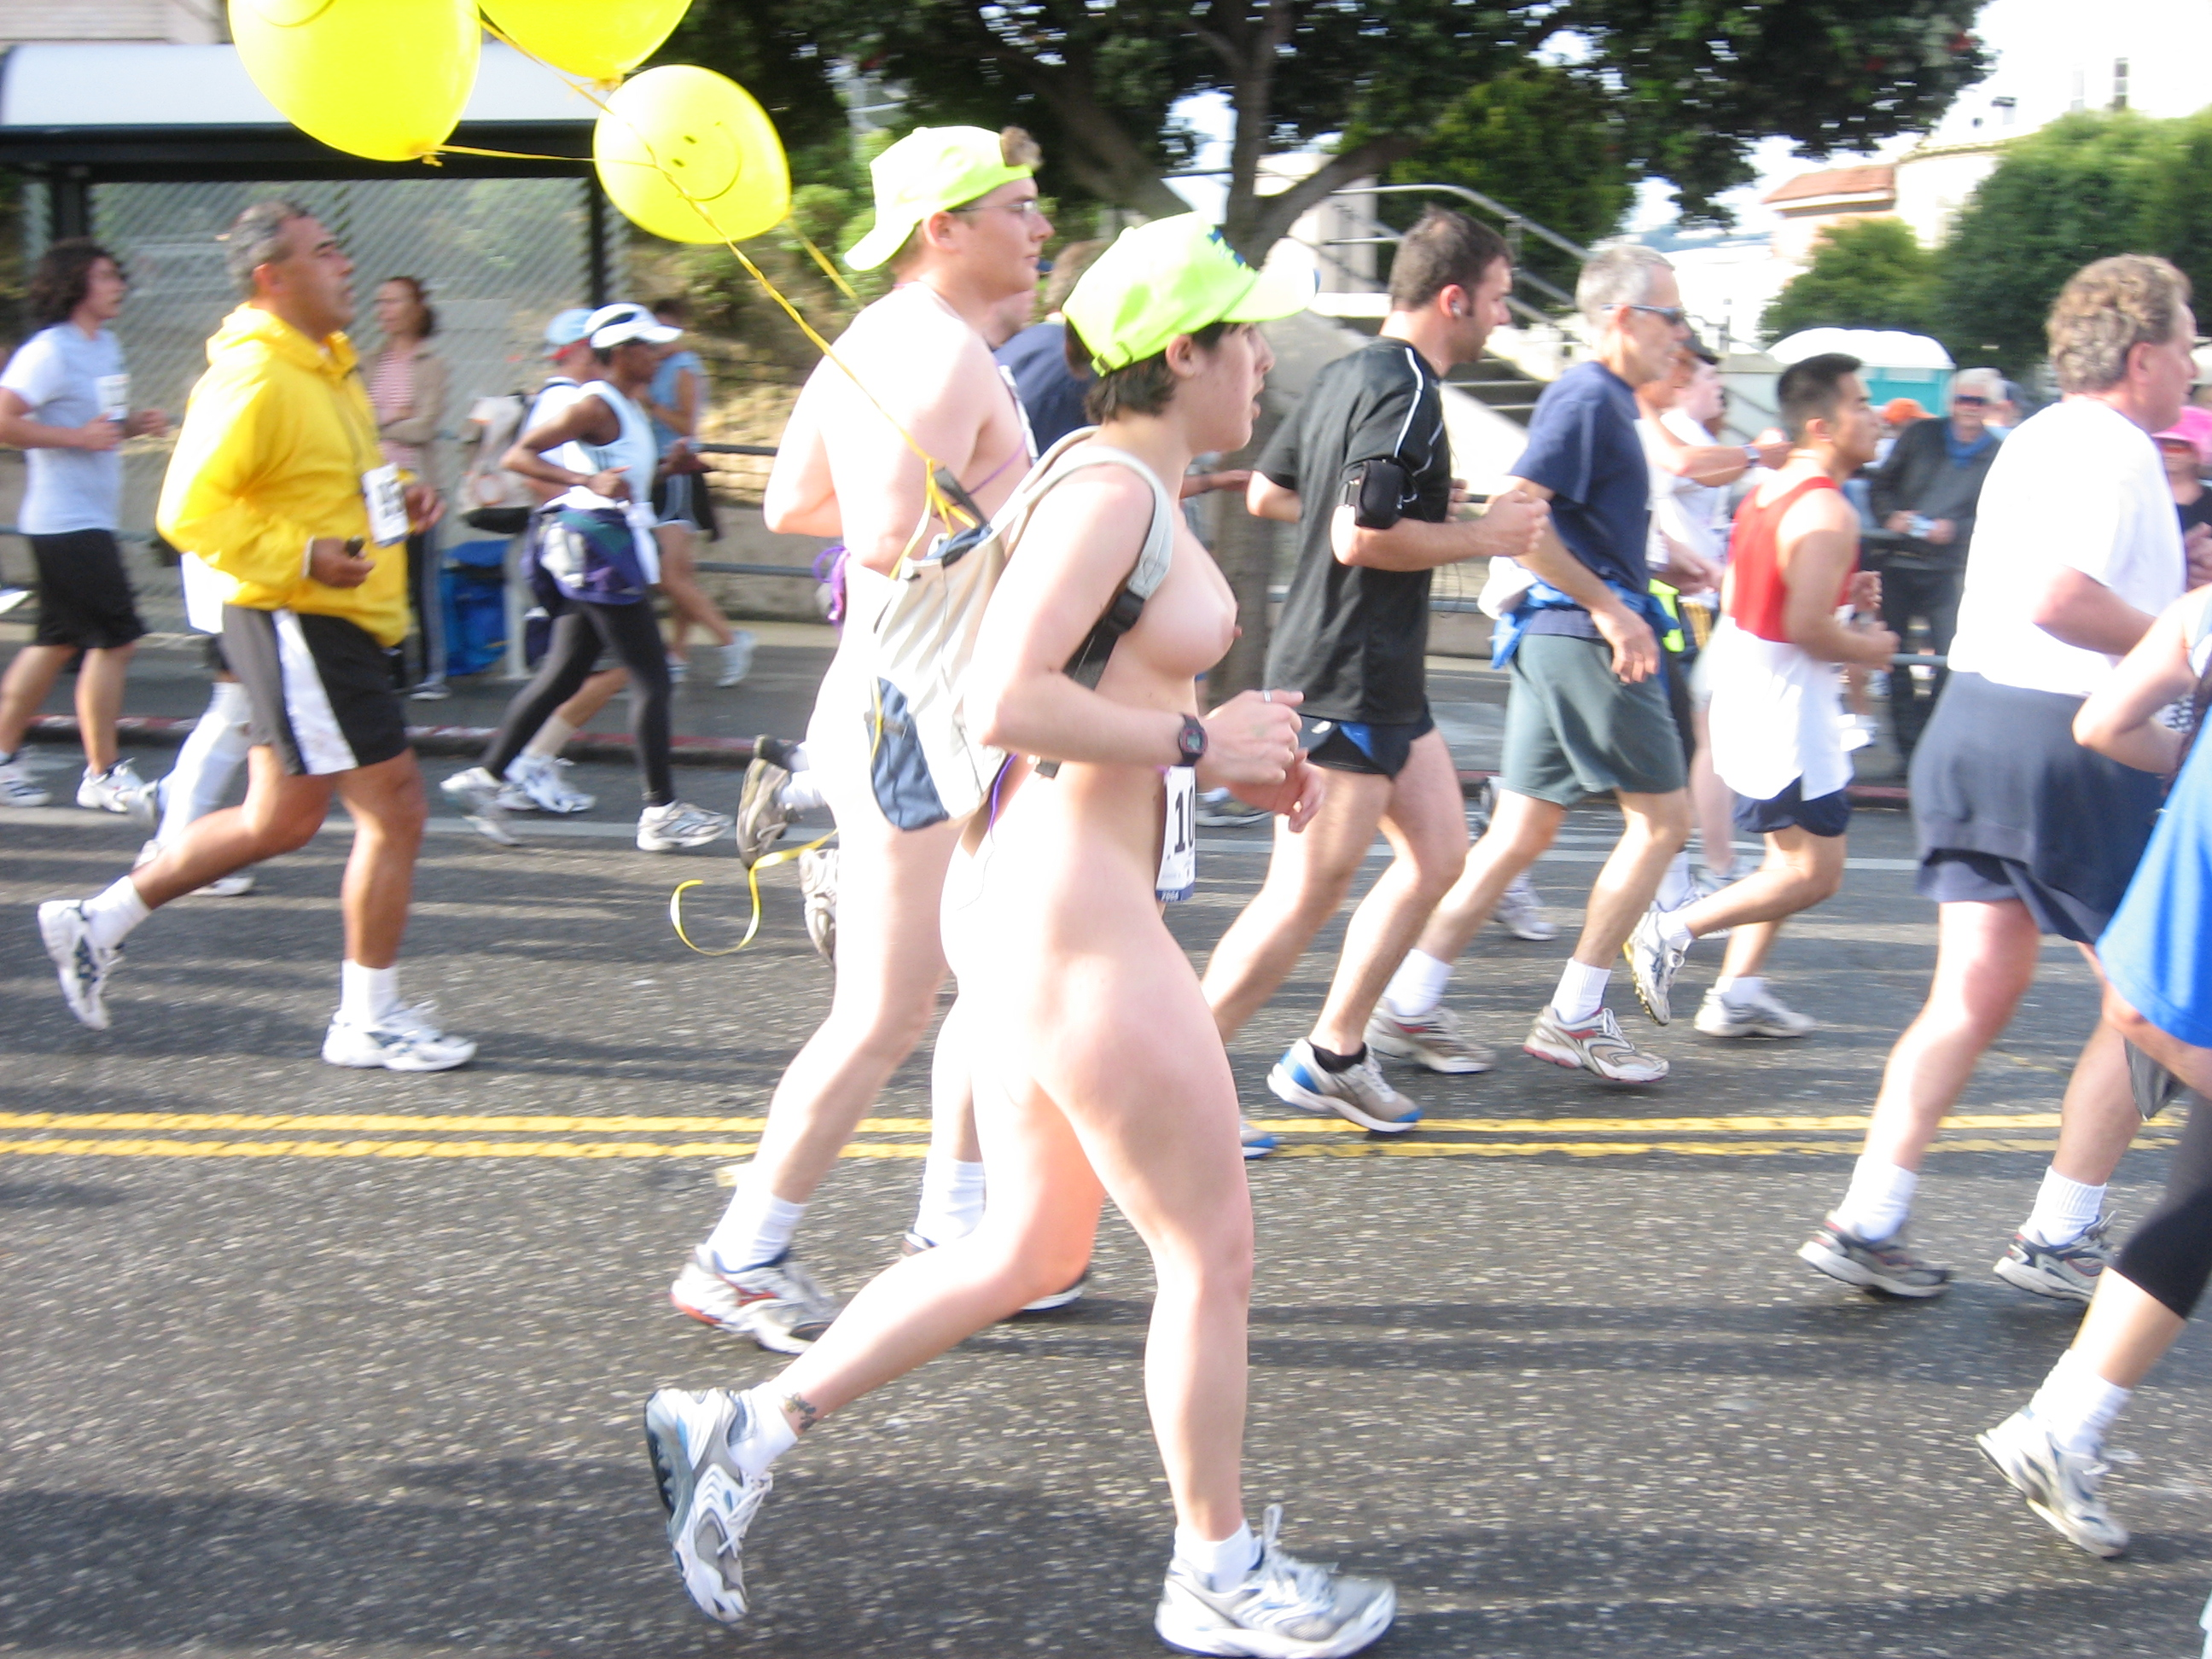 Bay to breakers naked women running due